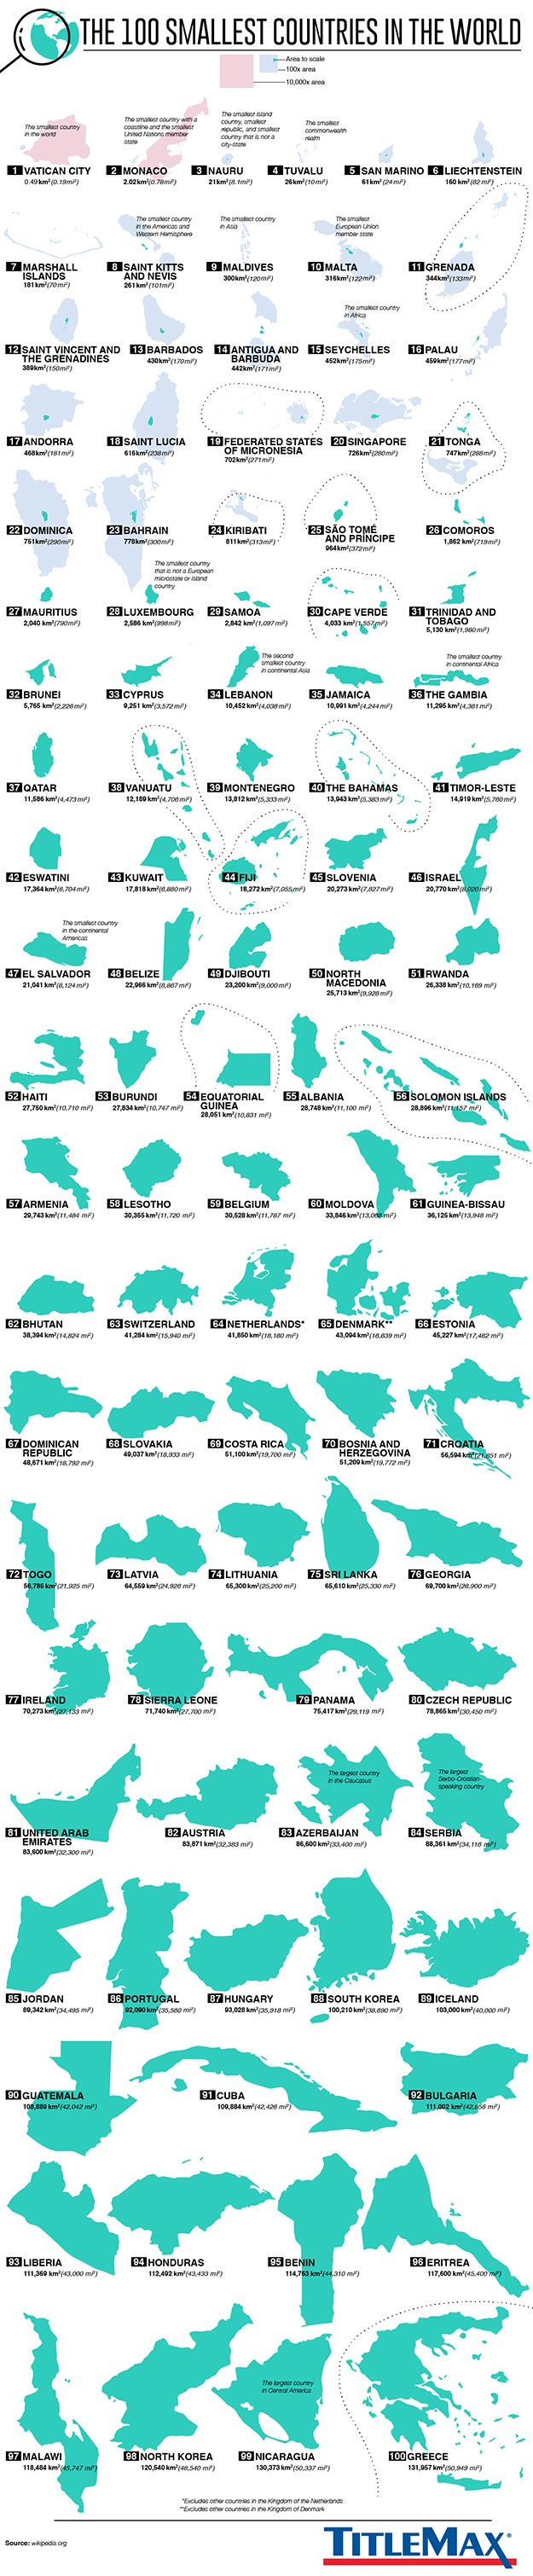 Infographic for The 100 Smallest Countries in the World